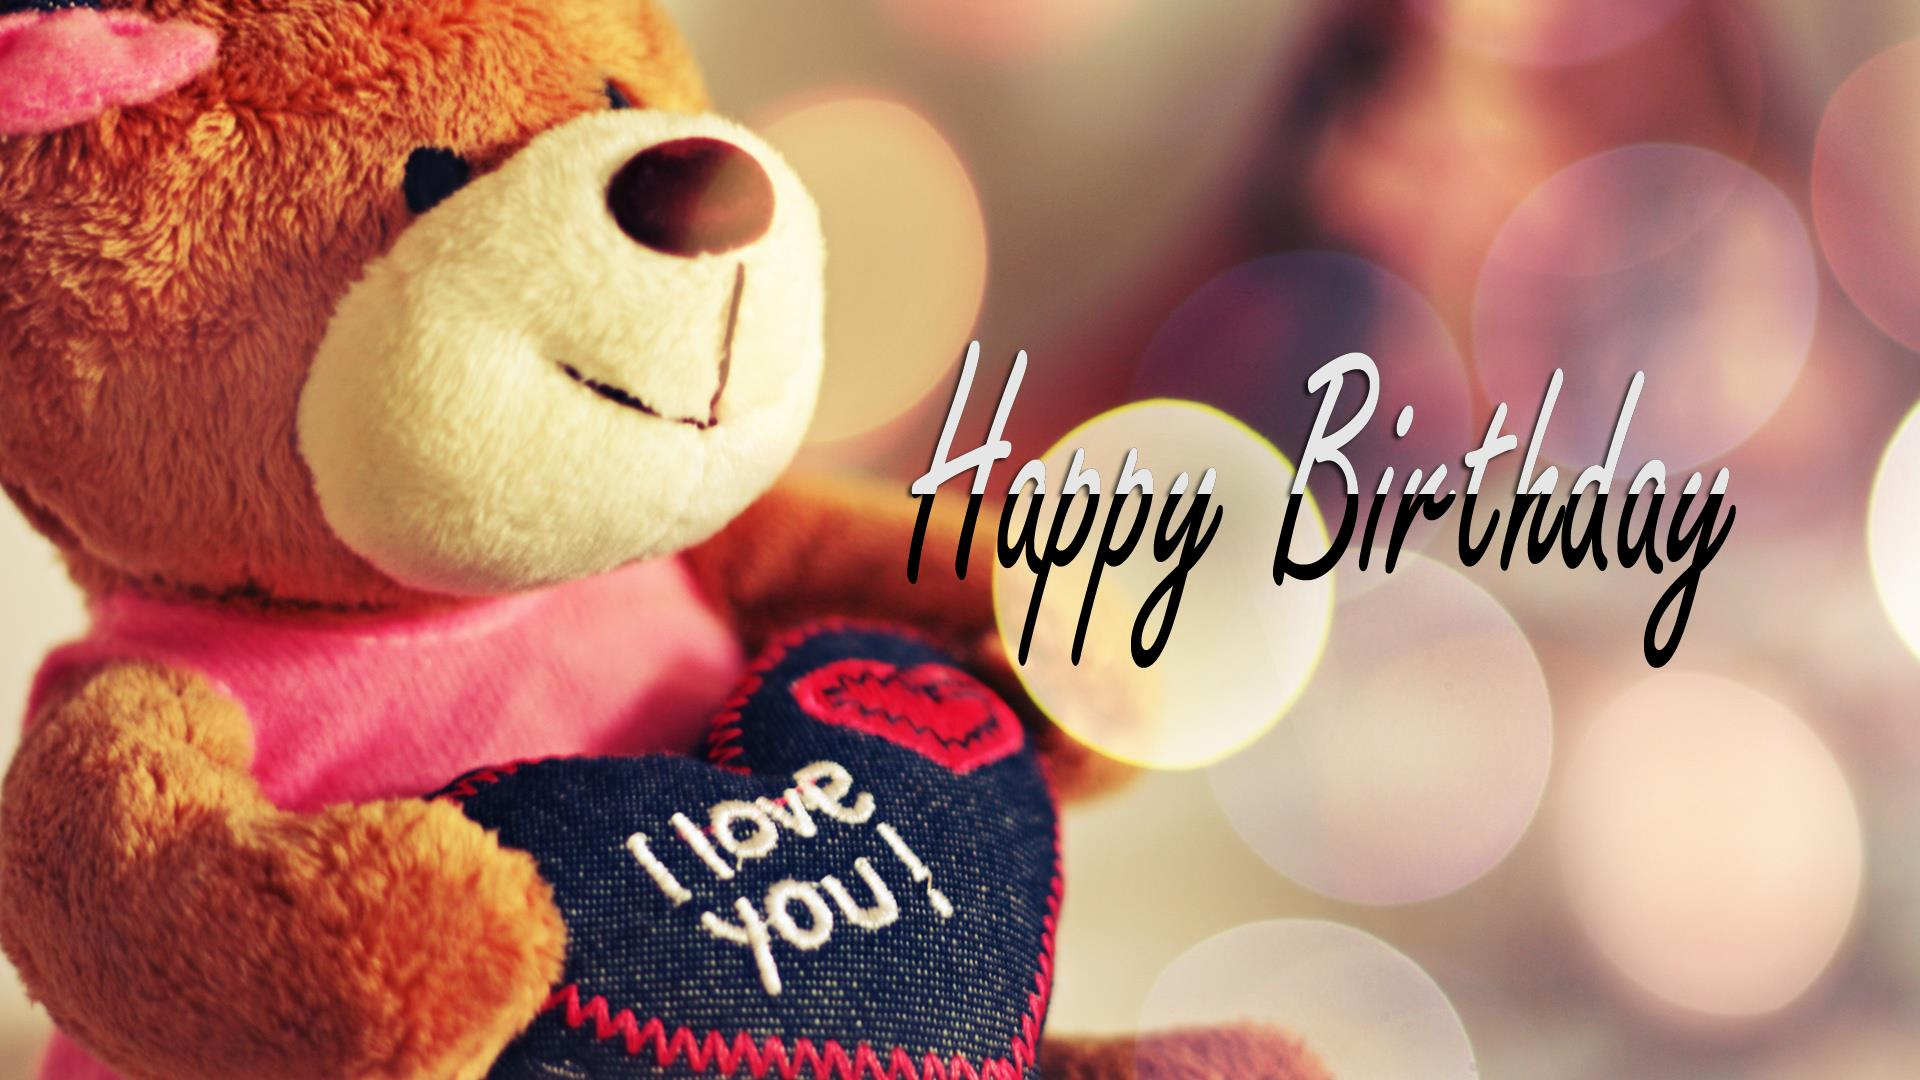 Wallpaper download in love - Happy Birthday My Love Hd Wallpapers Free Download